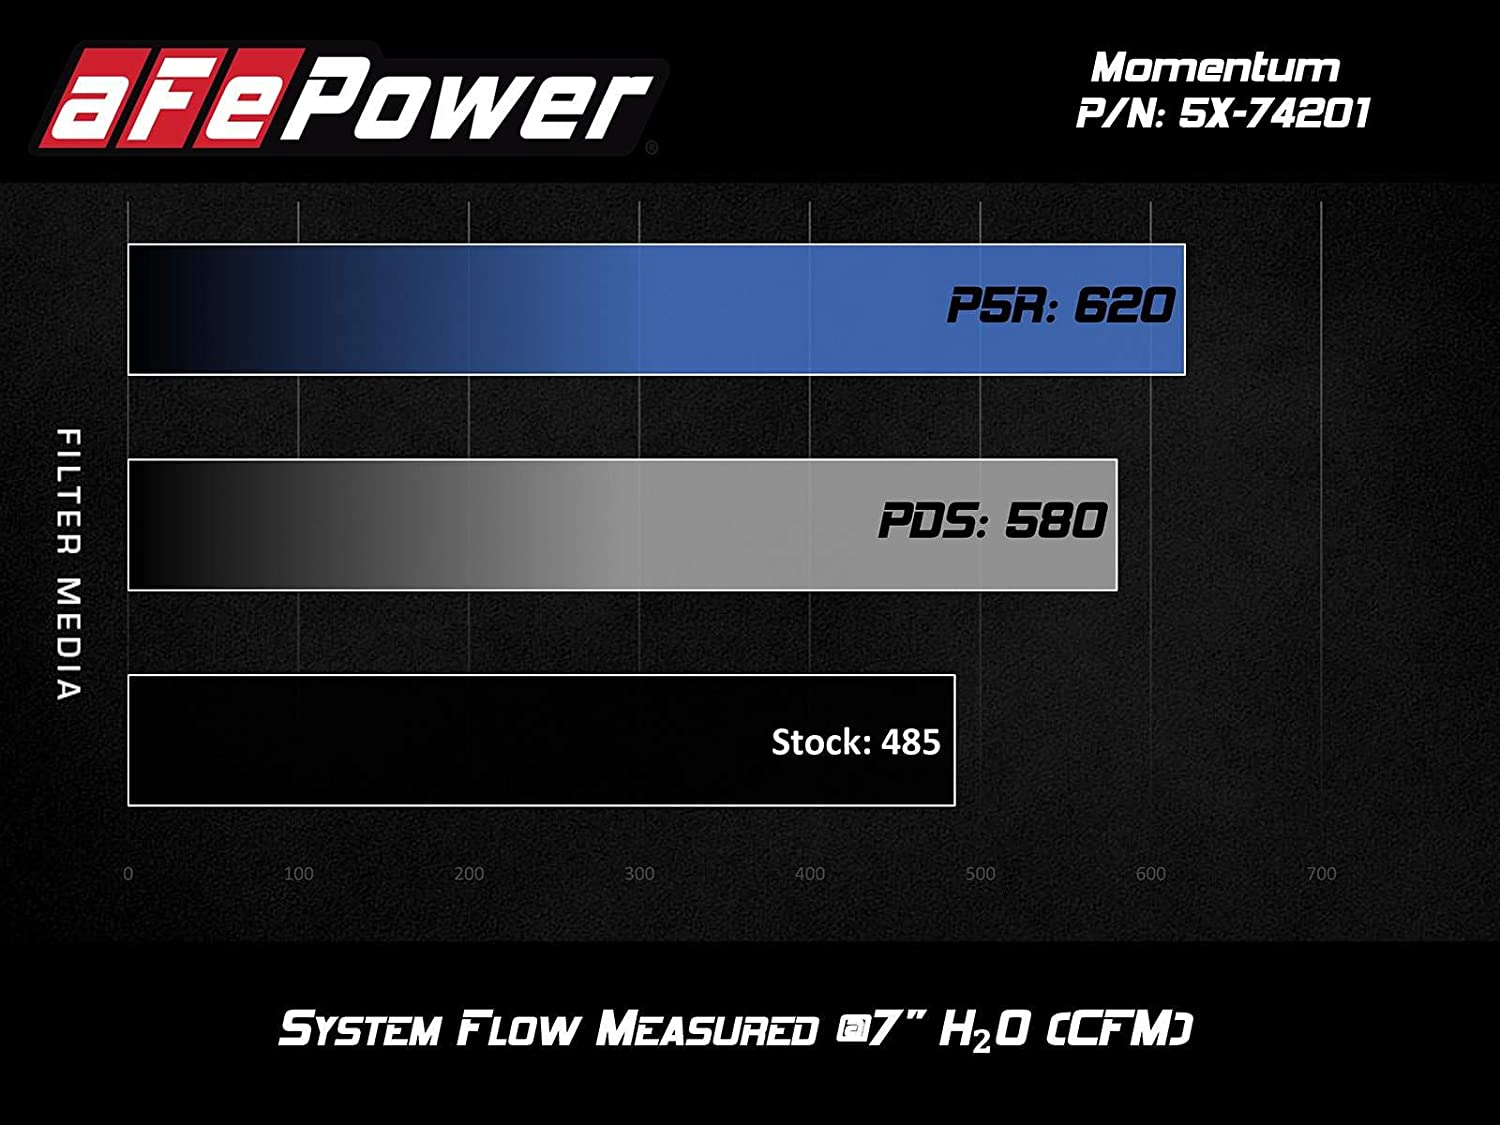 aFe 54-74201 Momentum Pro 5R Intake System for Chevrolet Corvette C7 V8 6.2L Engine